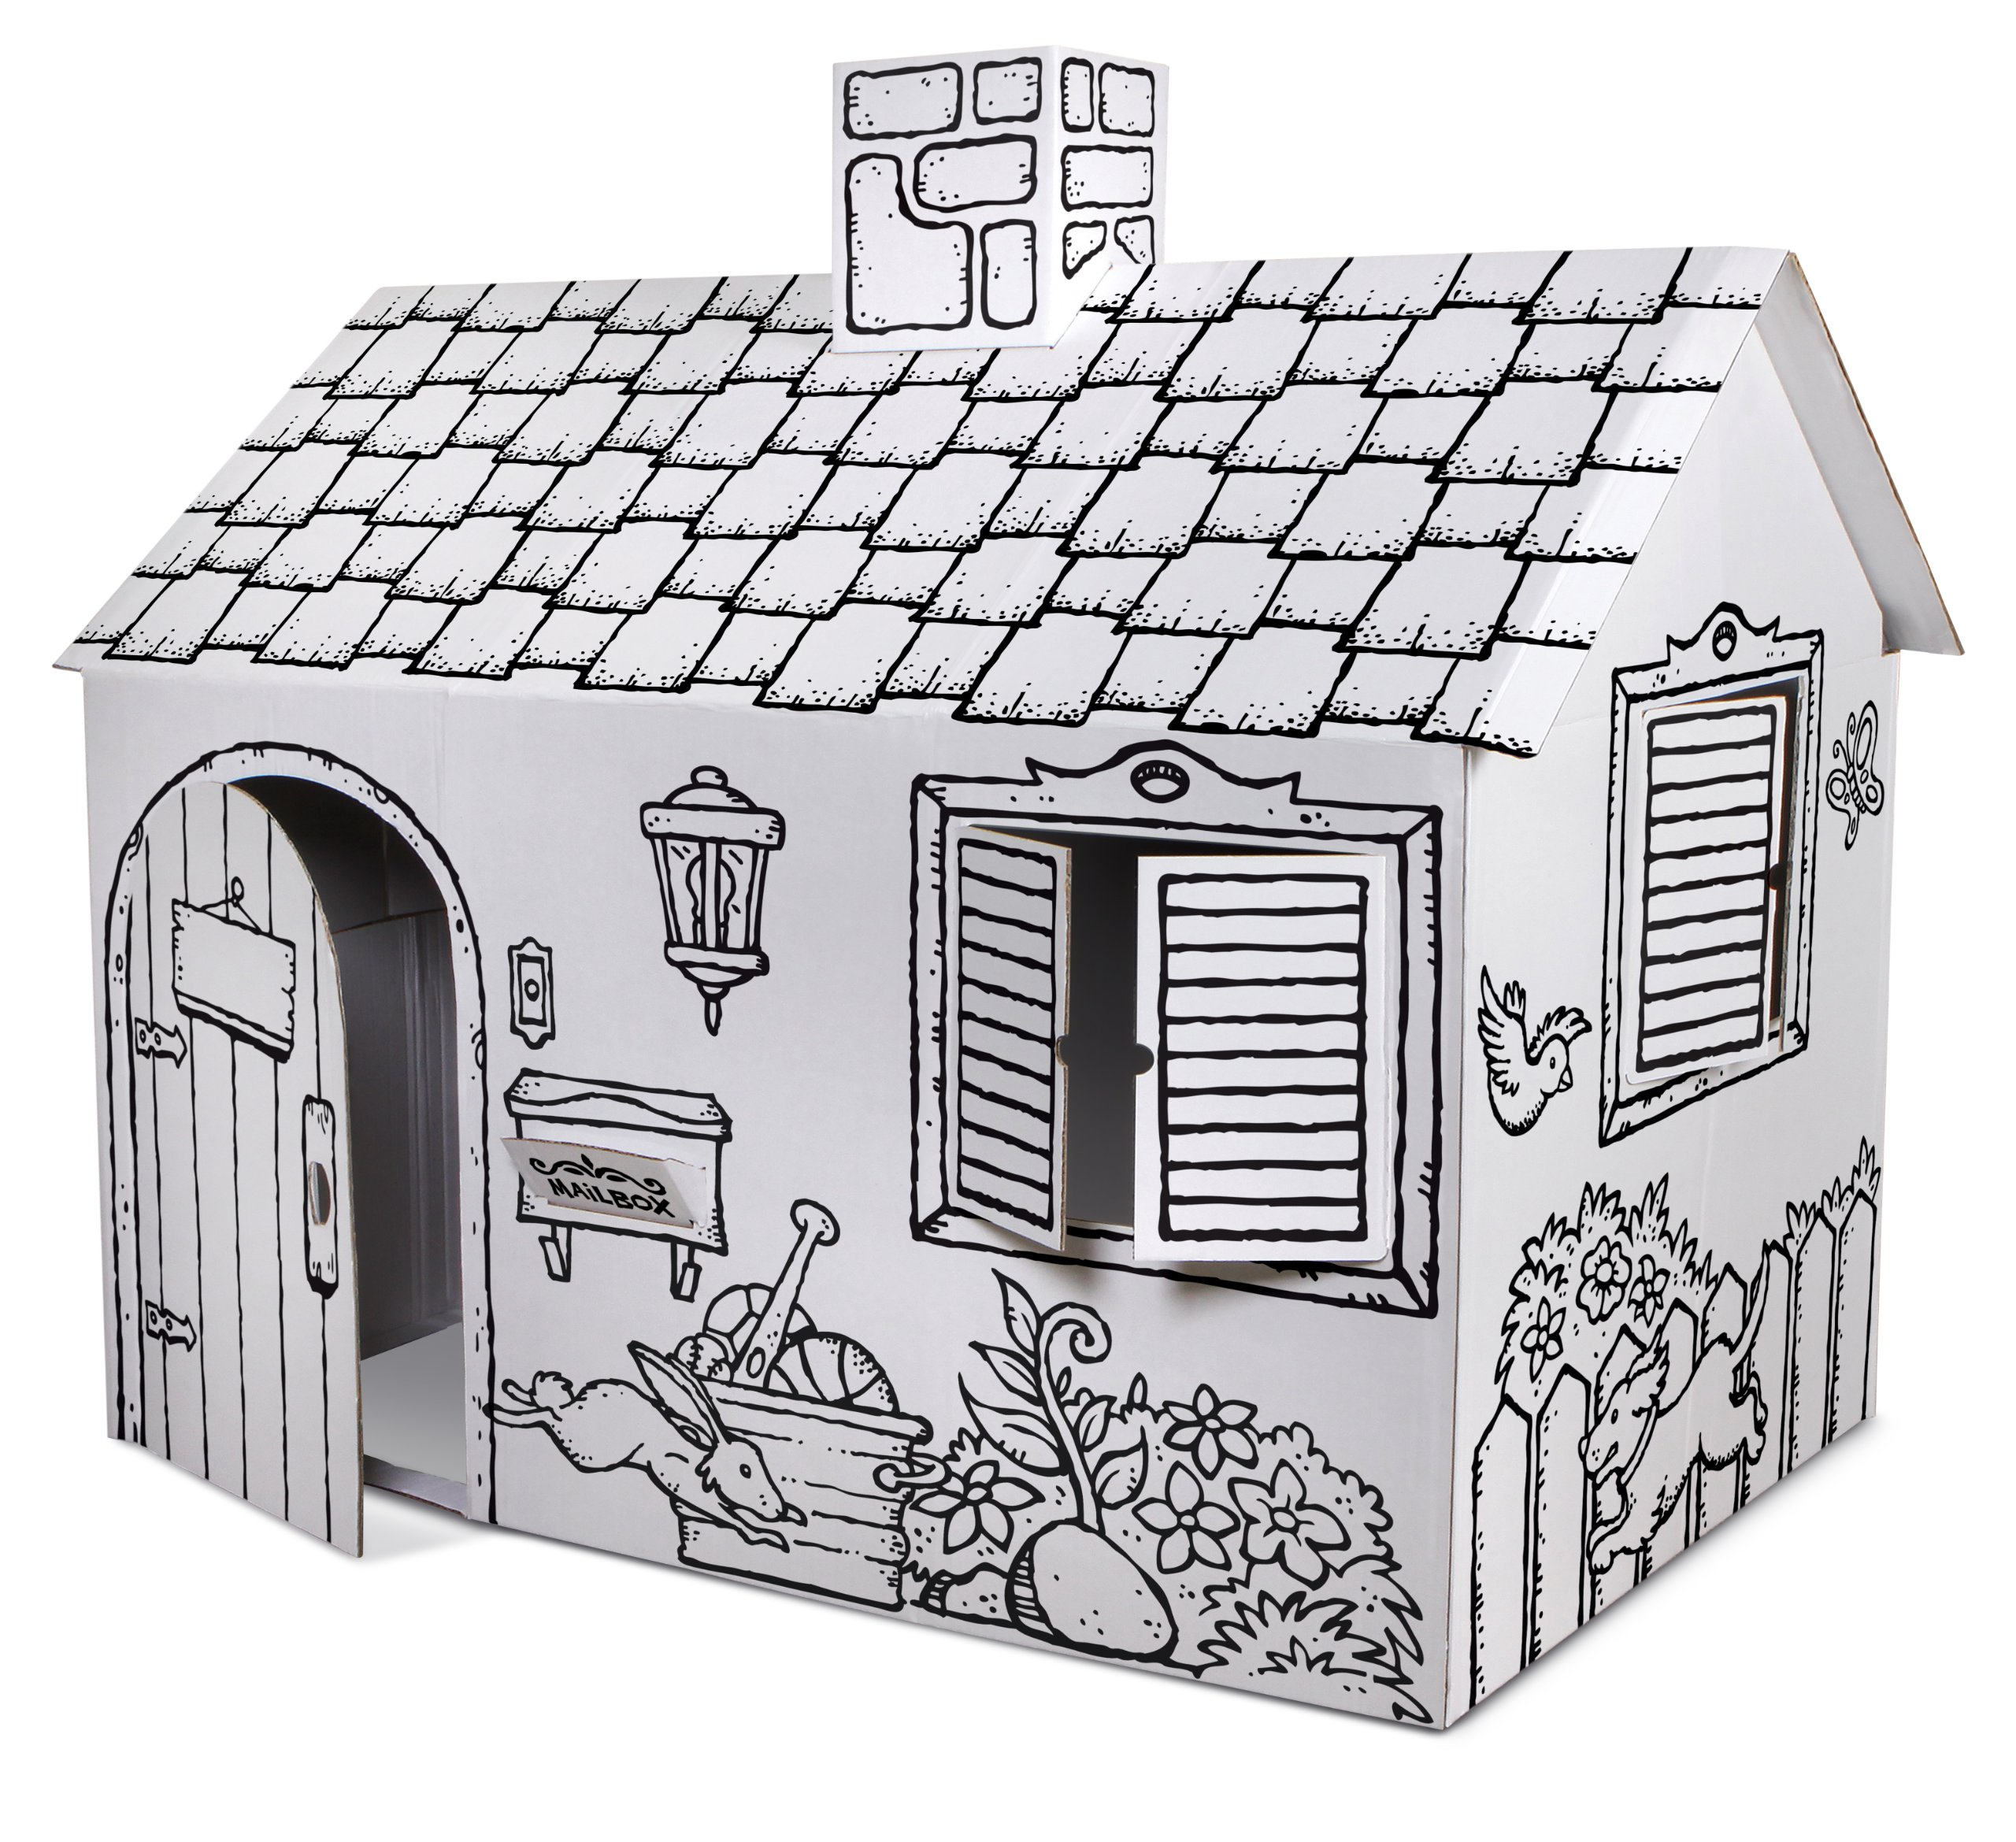 Discovery Kids Cardboard Color and Play Play House by Discovery Kids (Image #1)